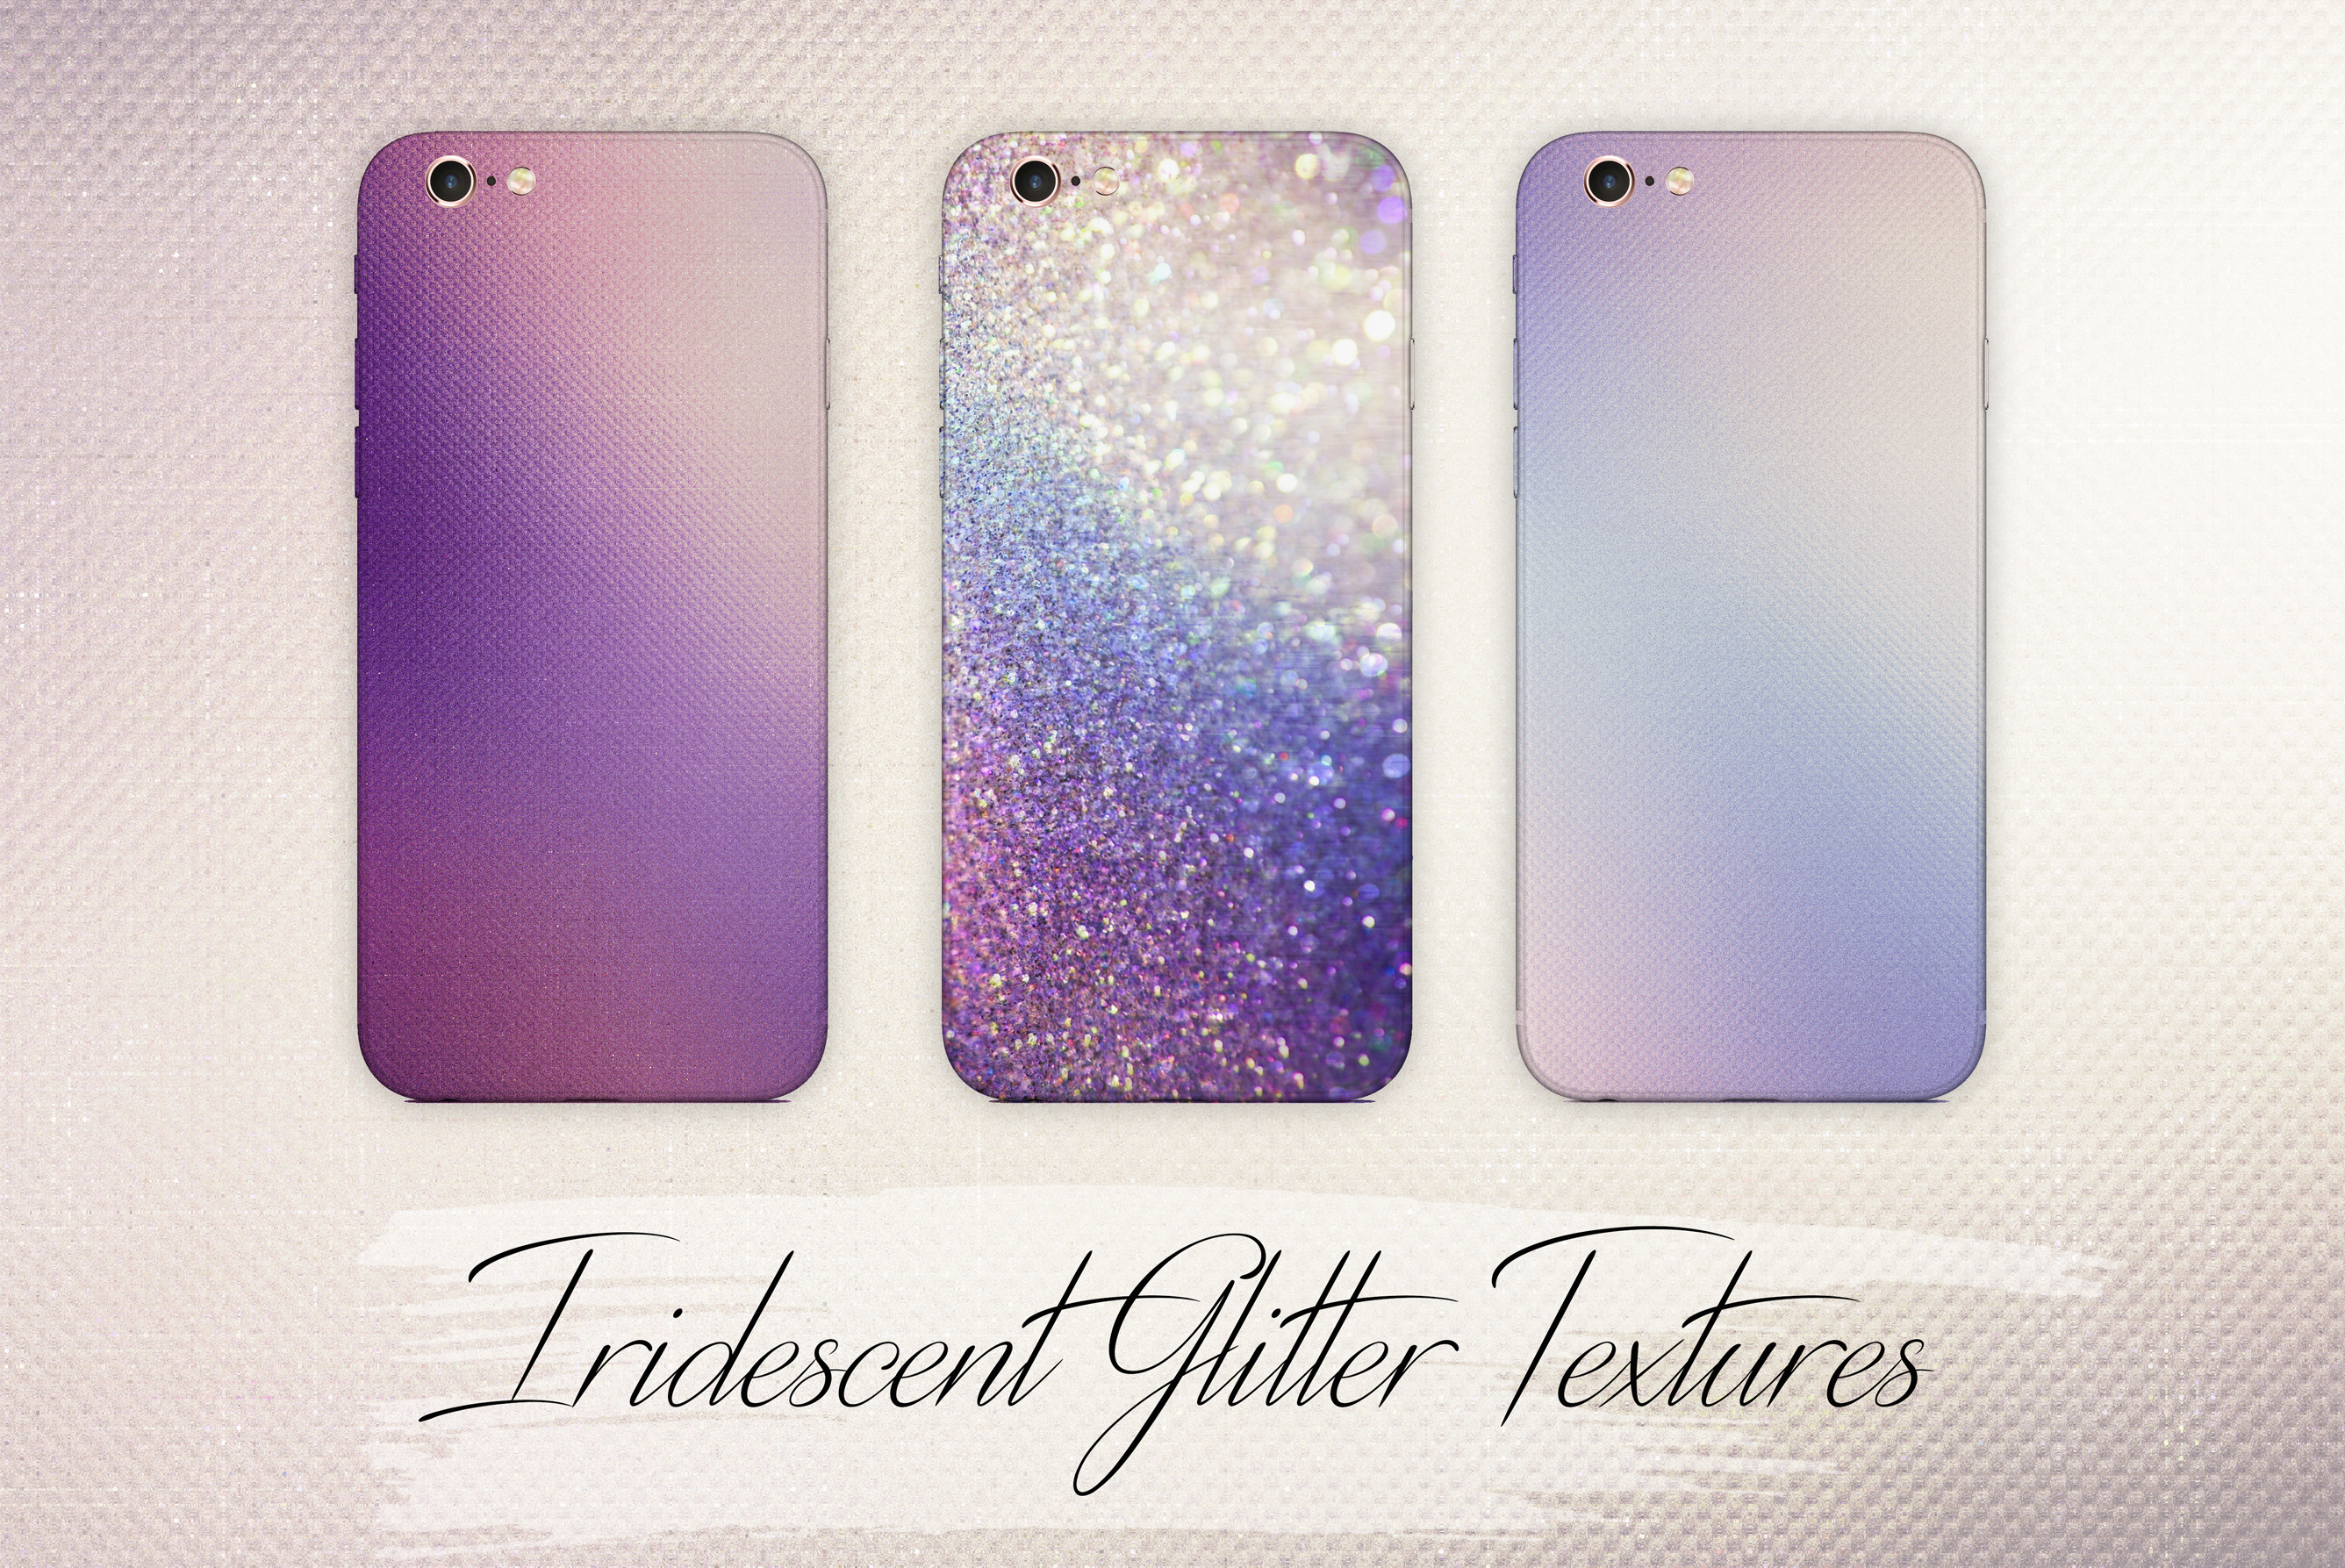 Iridescent and Glitter Foil 180 Textures BUNDLE example image 15